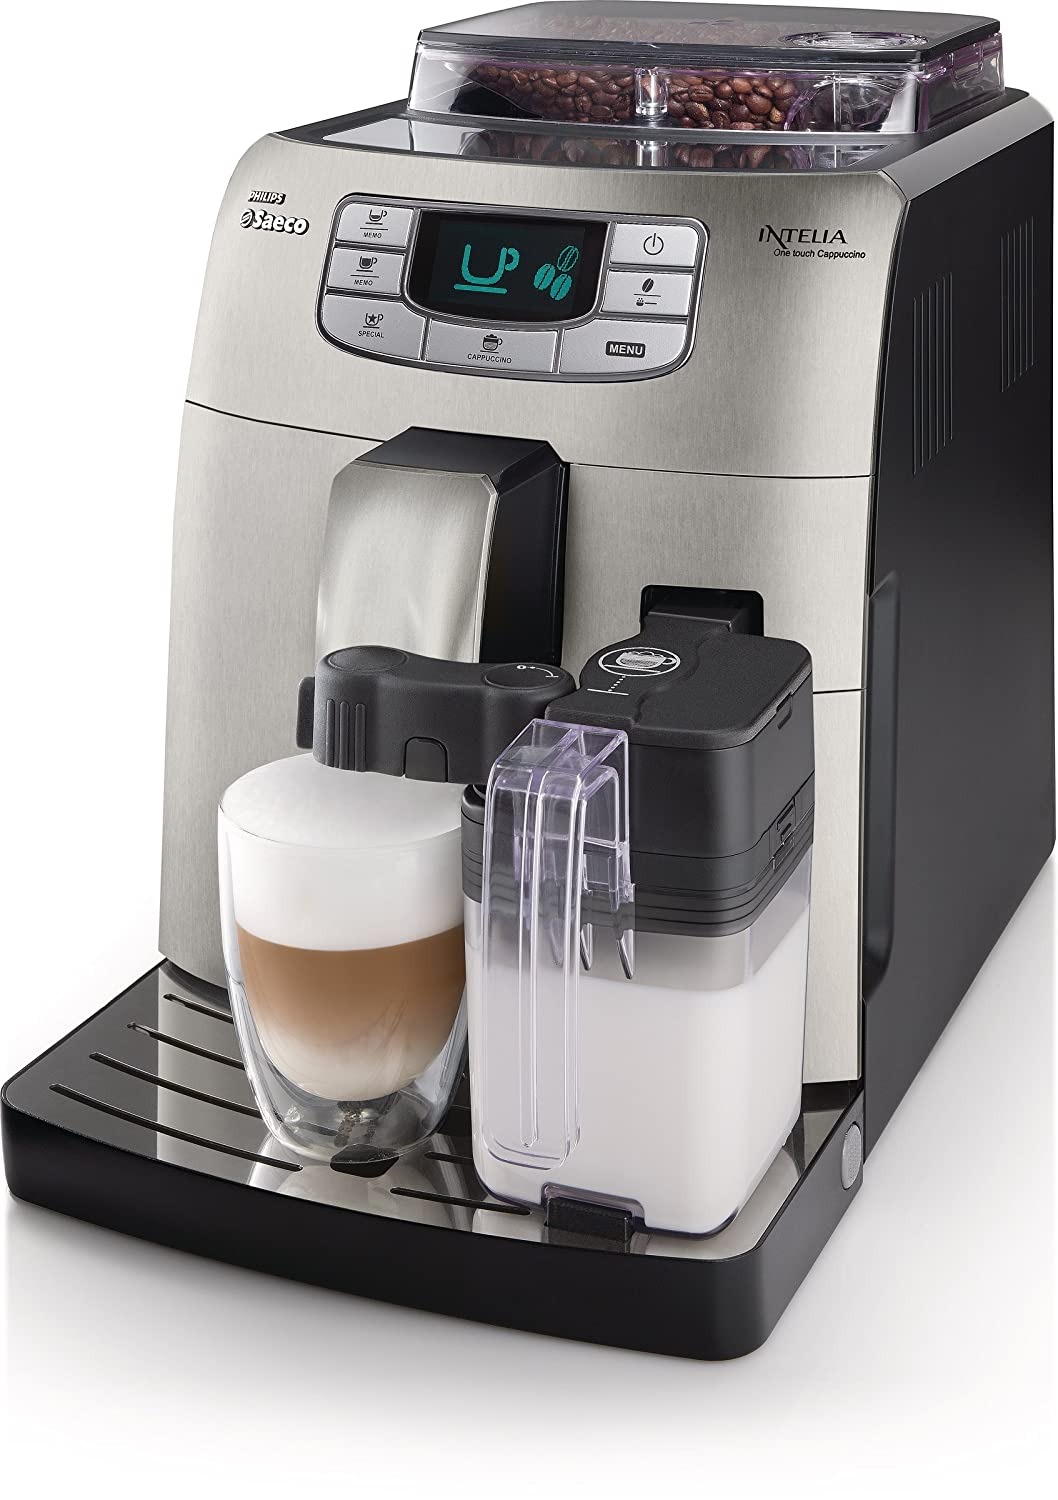 Best Coffee Maker Home 2015 : Best Espresso Coffee Maker Machines